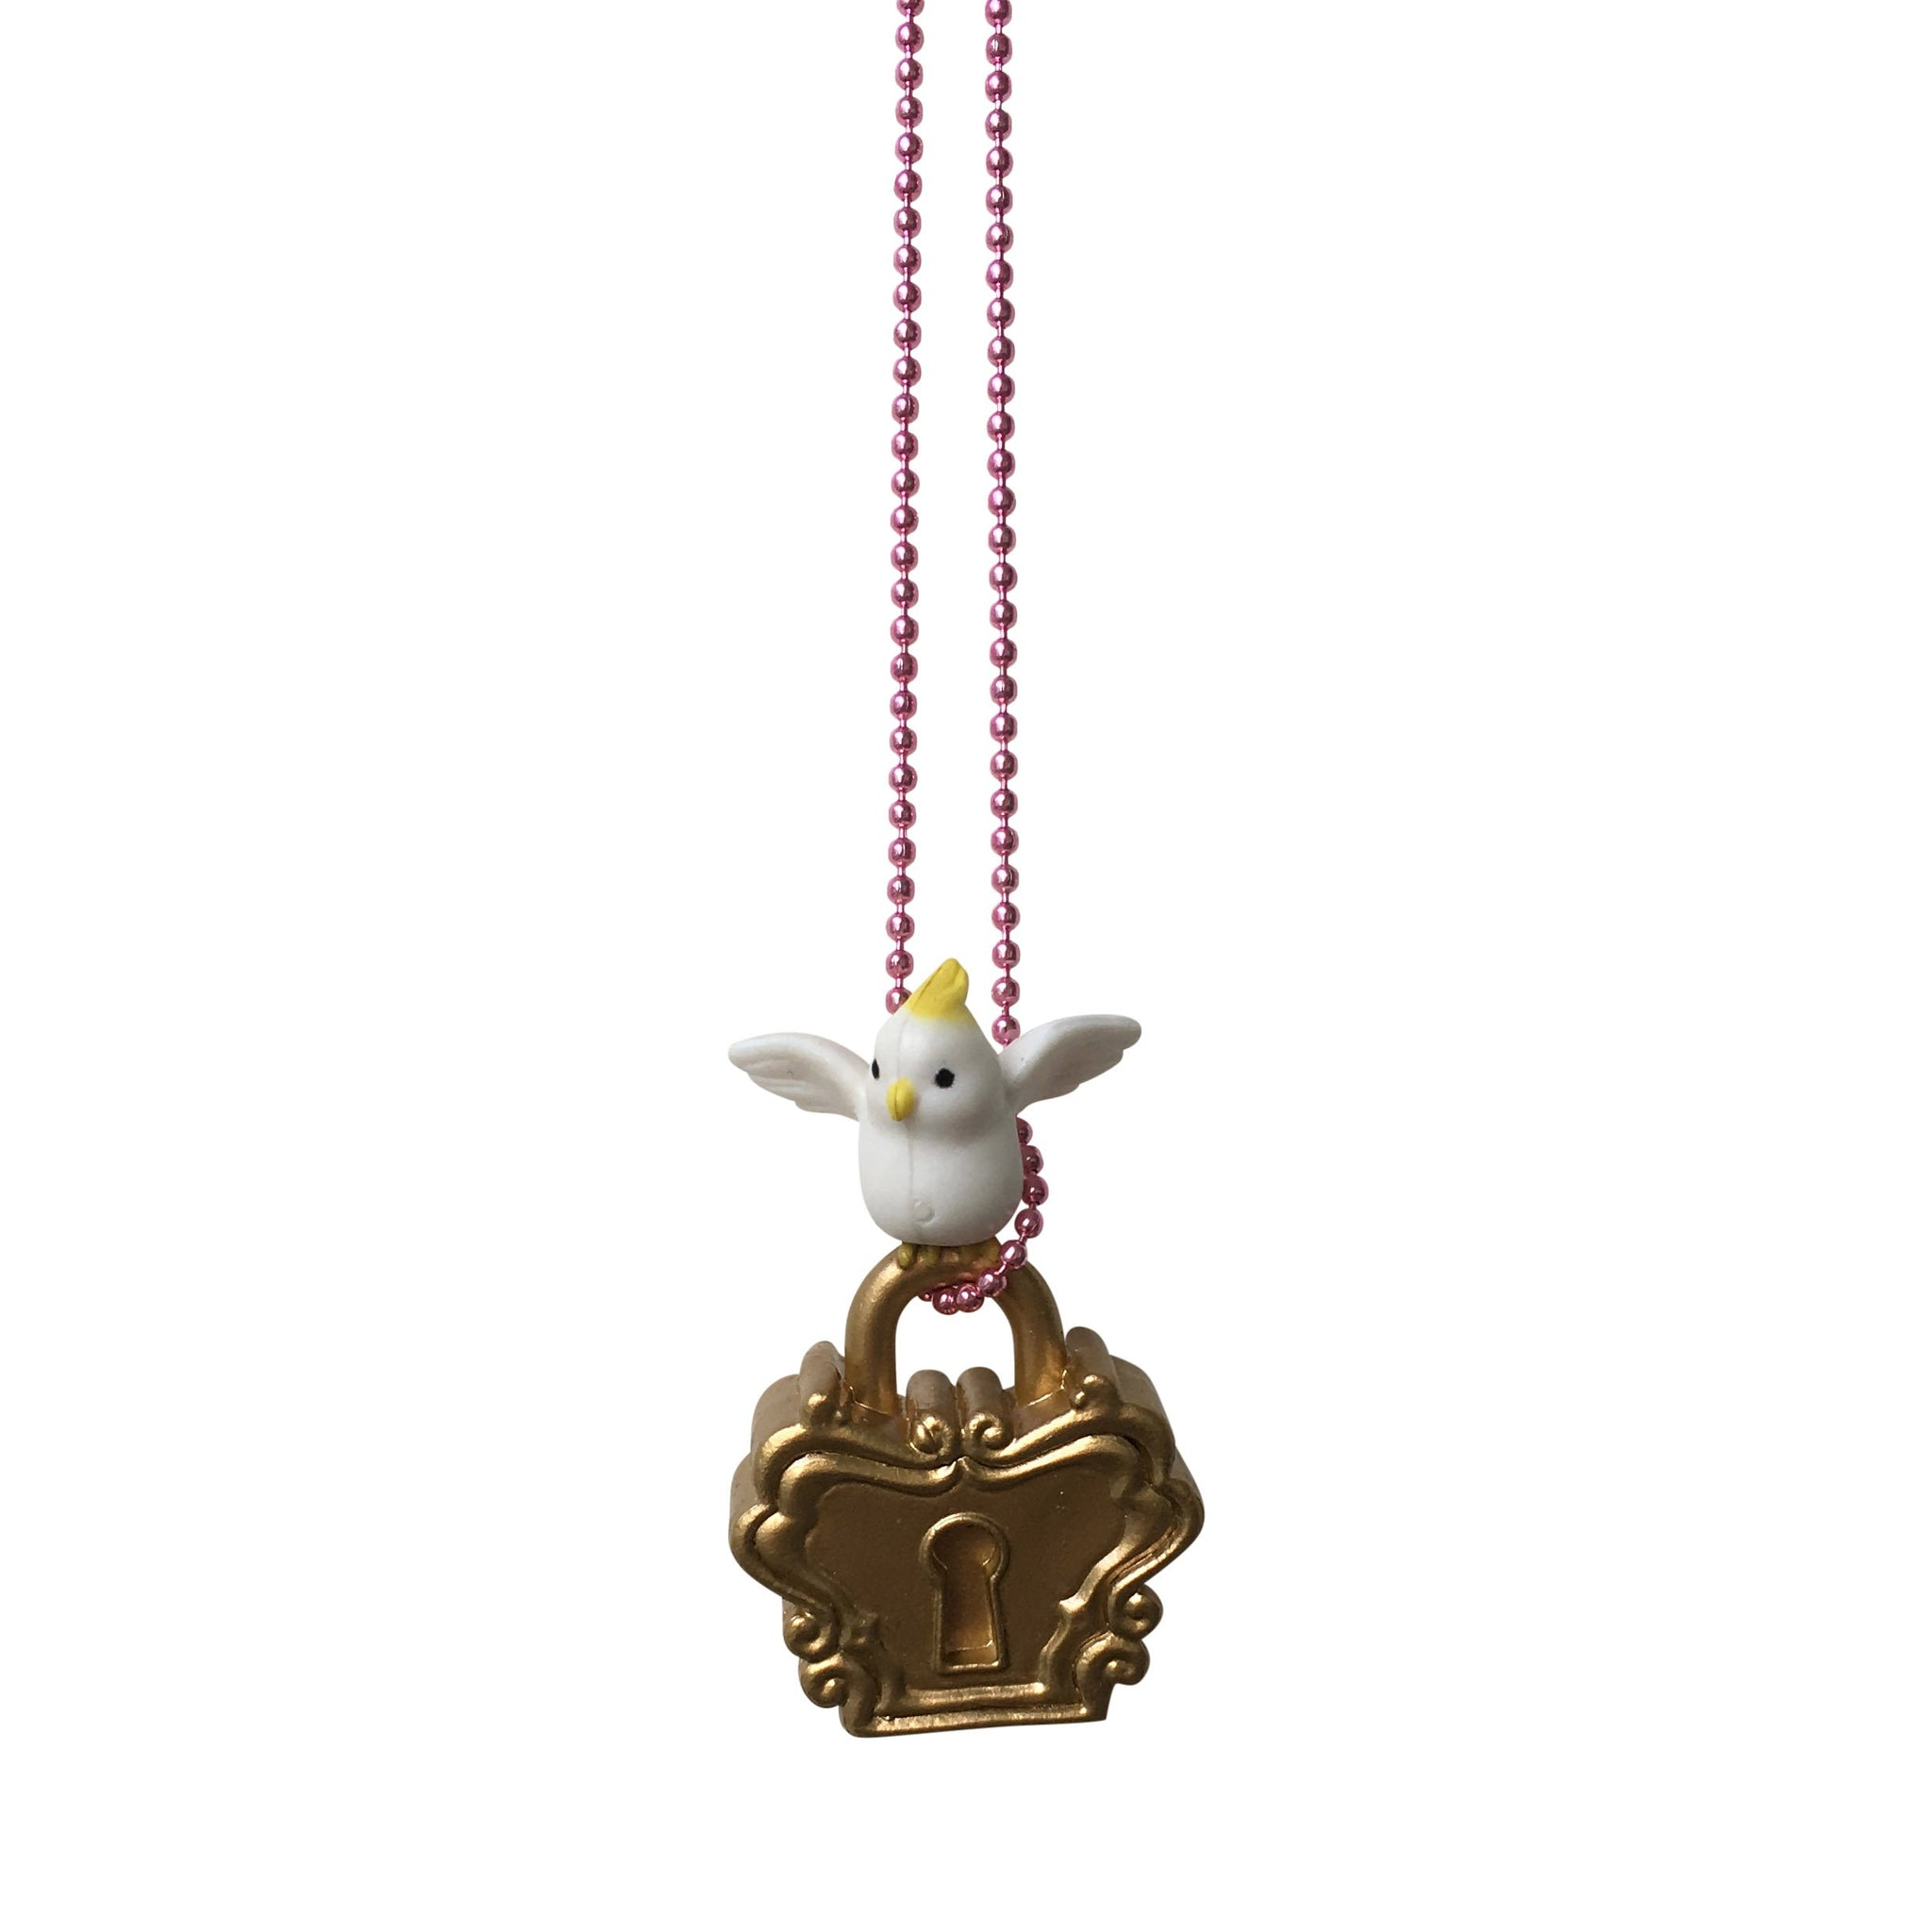 Ltd. Pop Cutie Key Keeper Necklaces